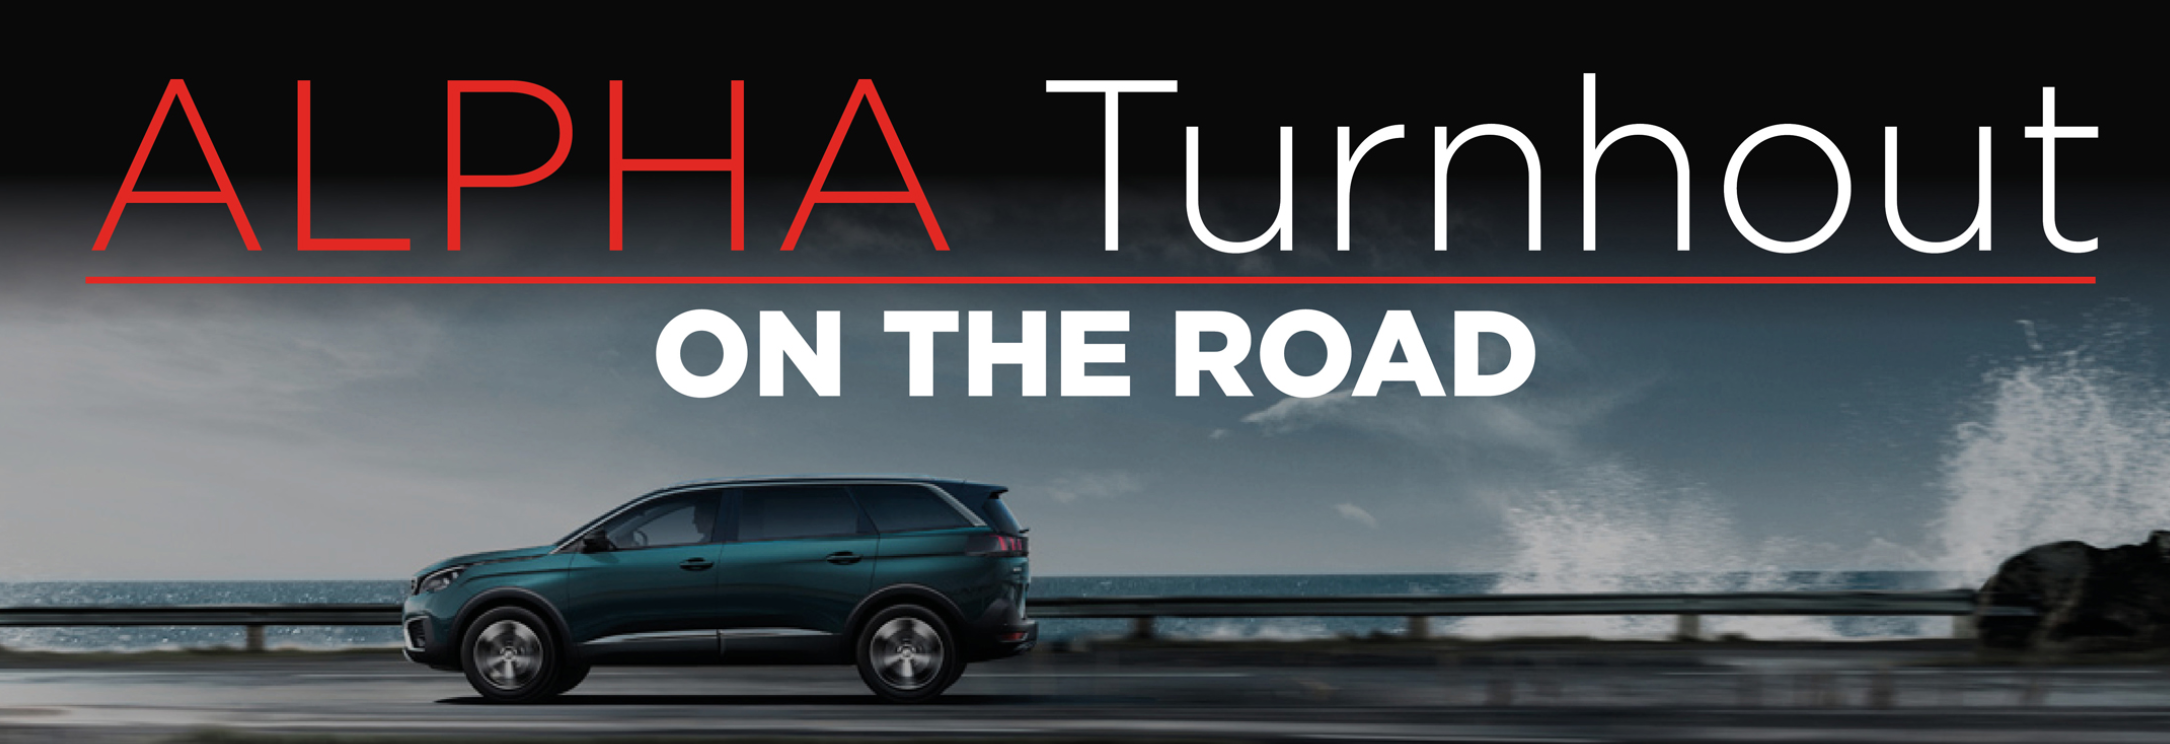 Alpha Turnhout on the road